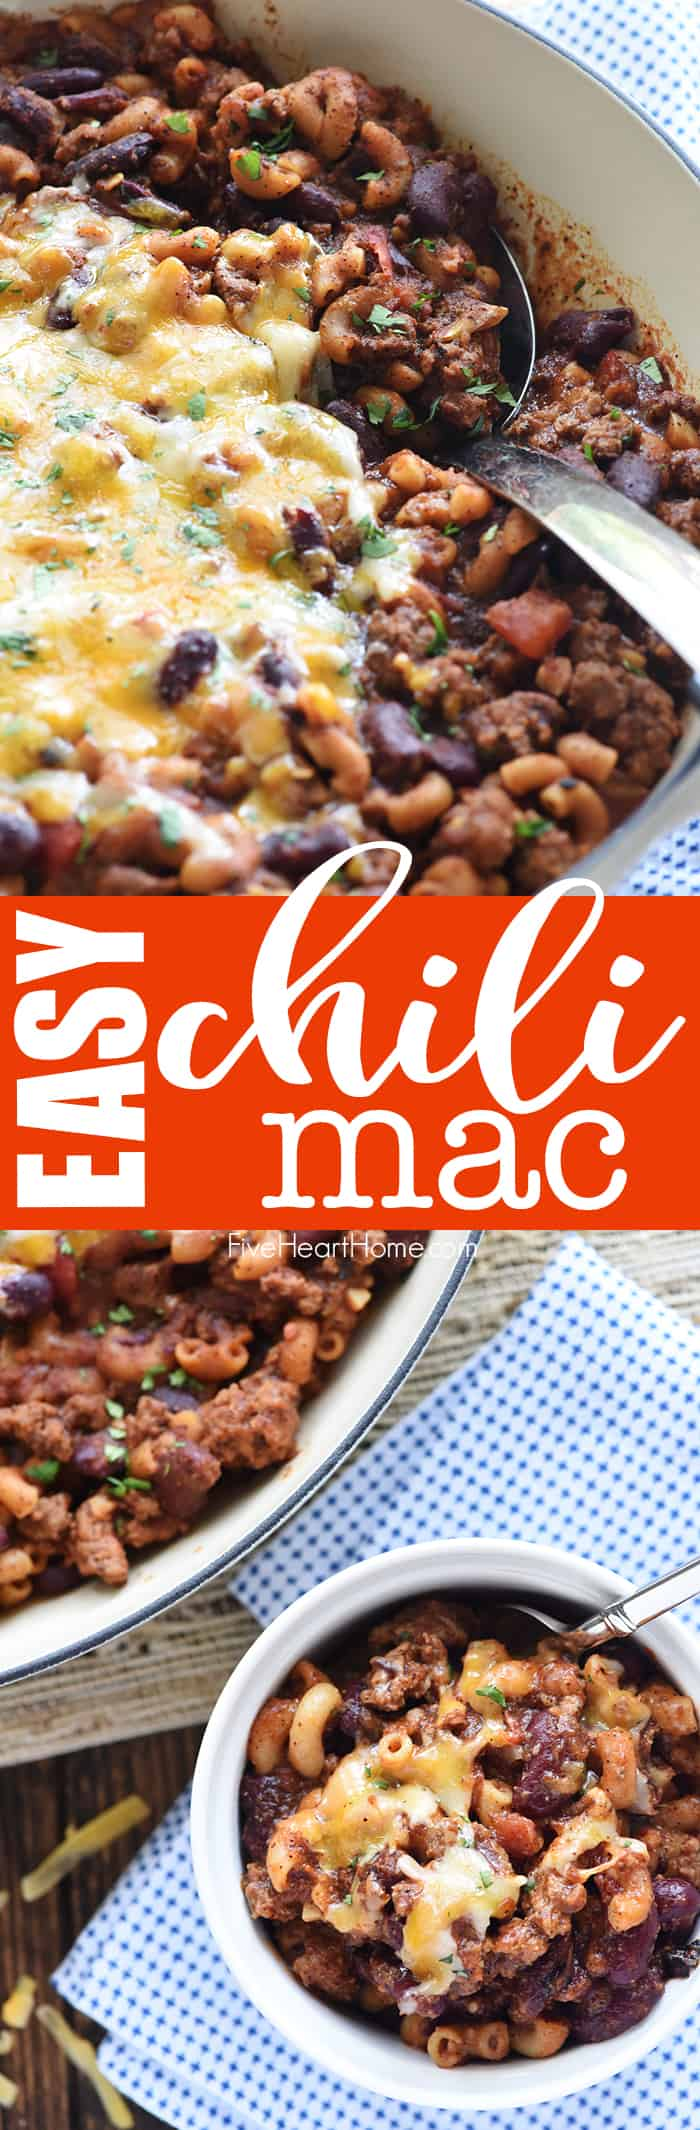 Chili Mac ~ a quick, easy, family-friendly dinner recipe featuring ground beef, beans, pasta, and cheese in a zippy tomato sauce made in just one skillet! | FiveHeartHome.com